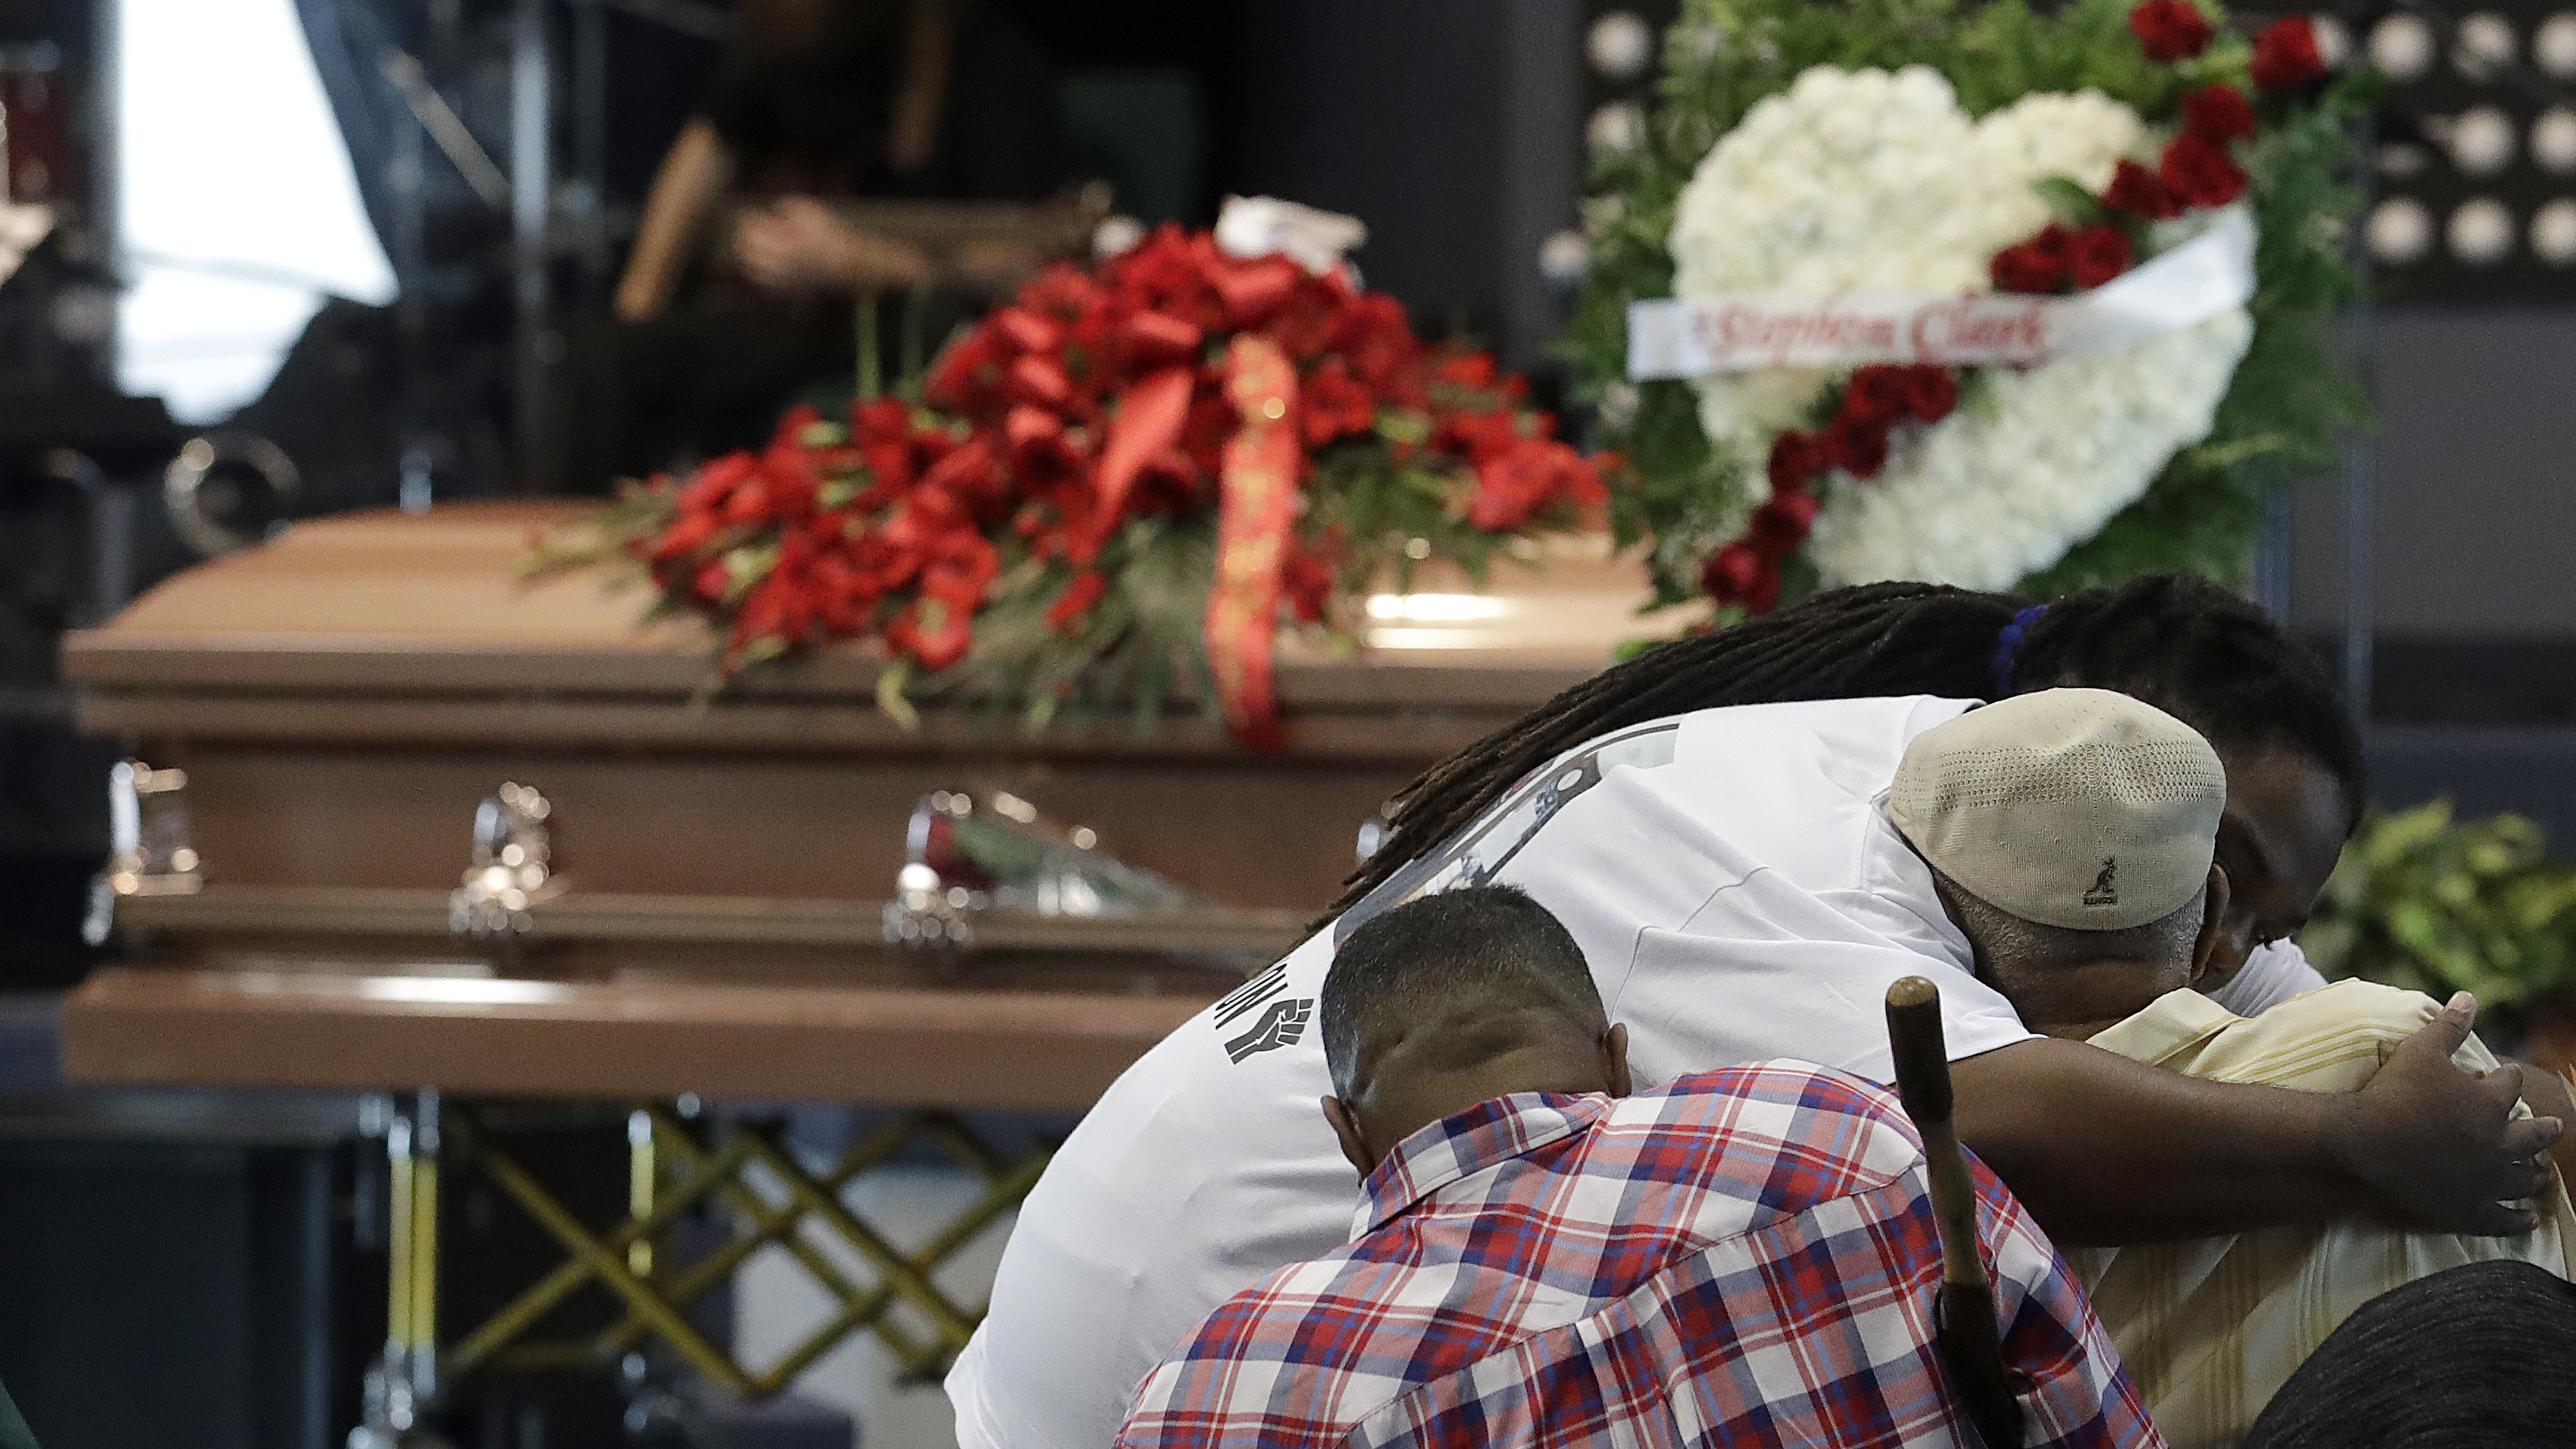 A man hugs another man during funeral services for Stephon Clark in Sacramento, Calif. Thursday.